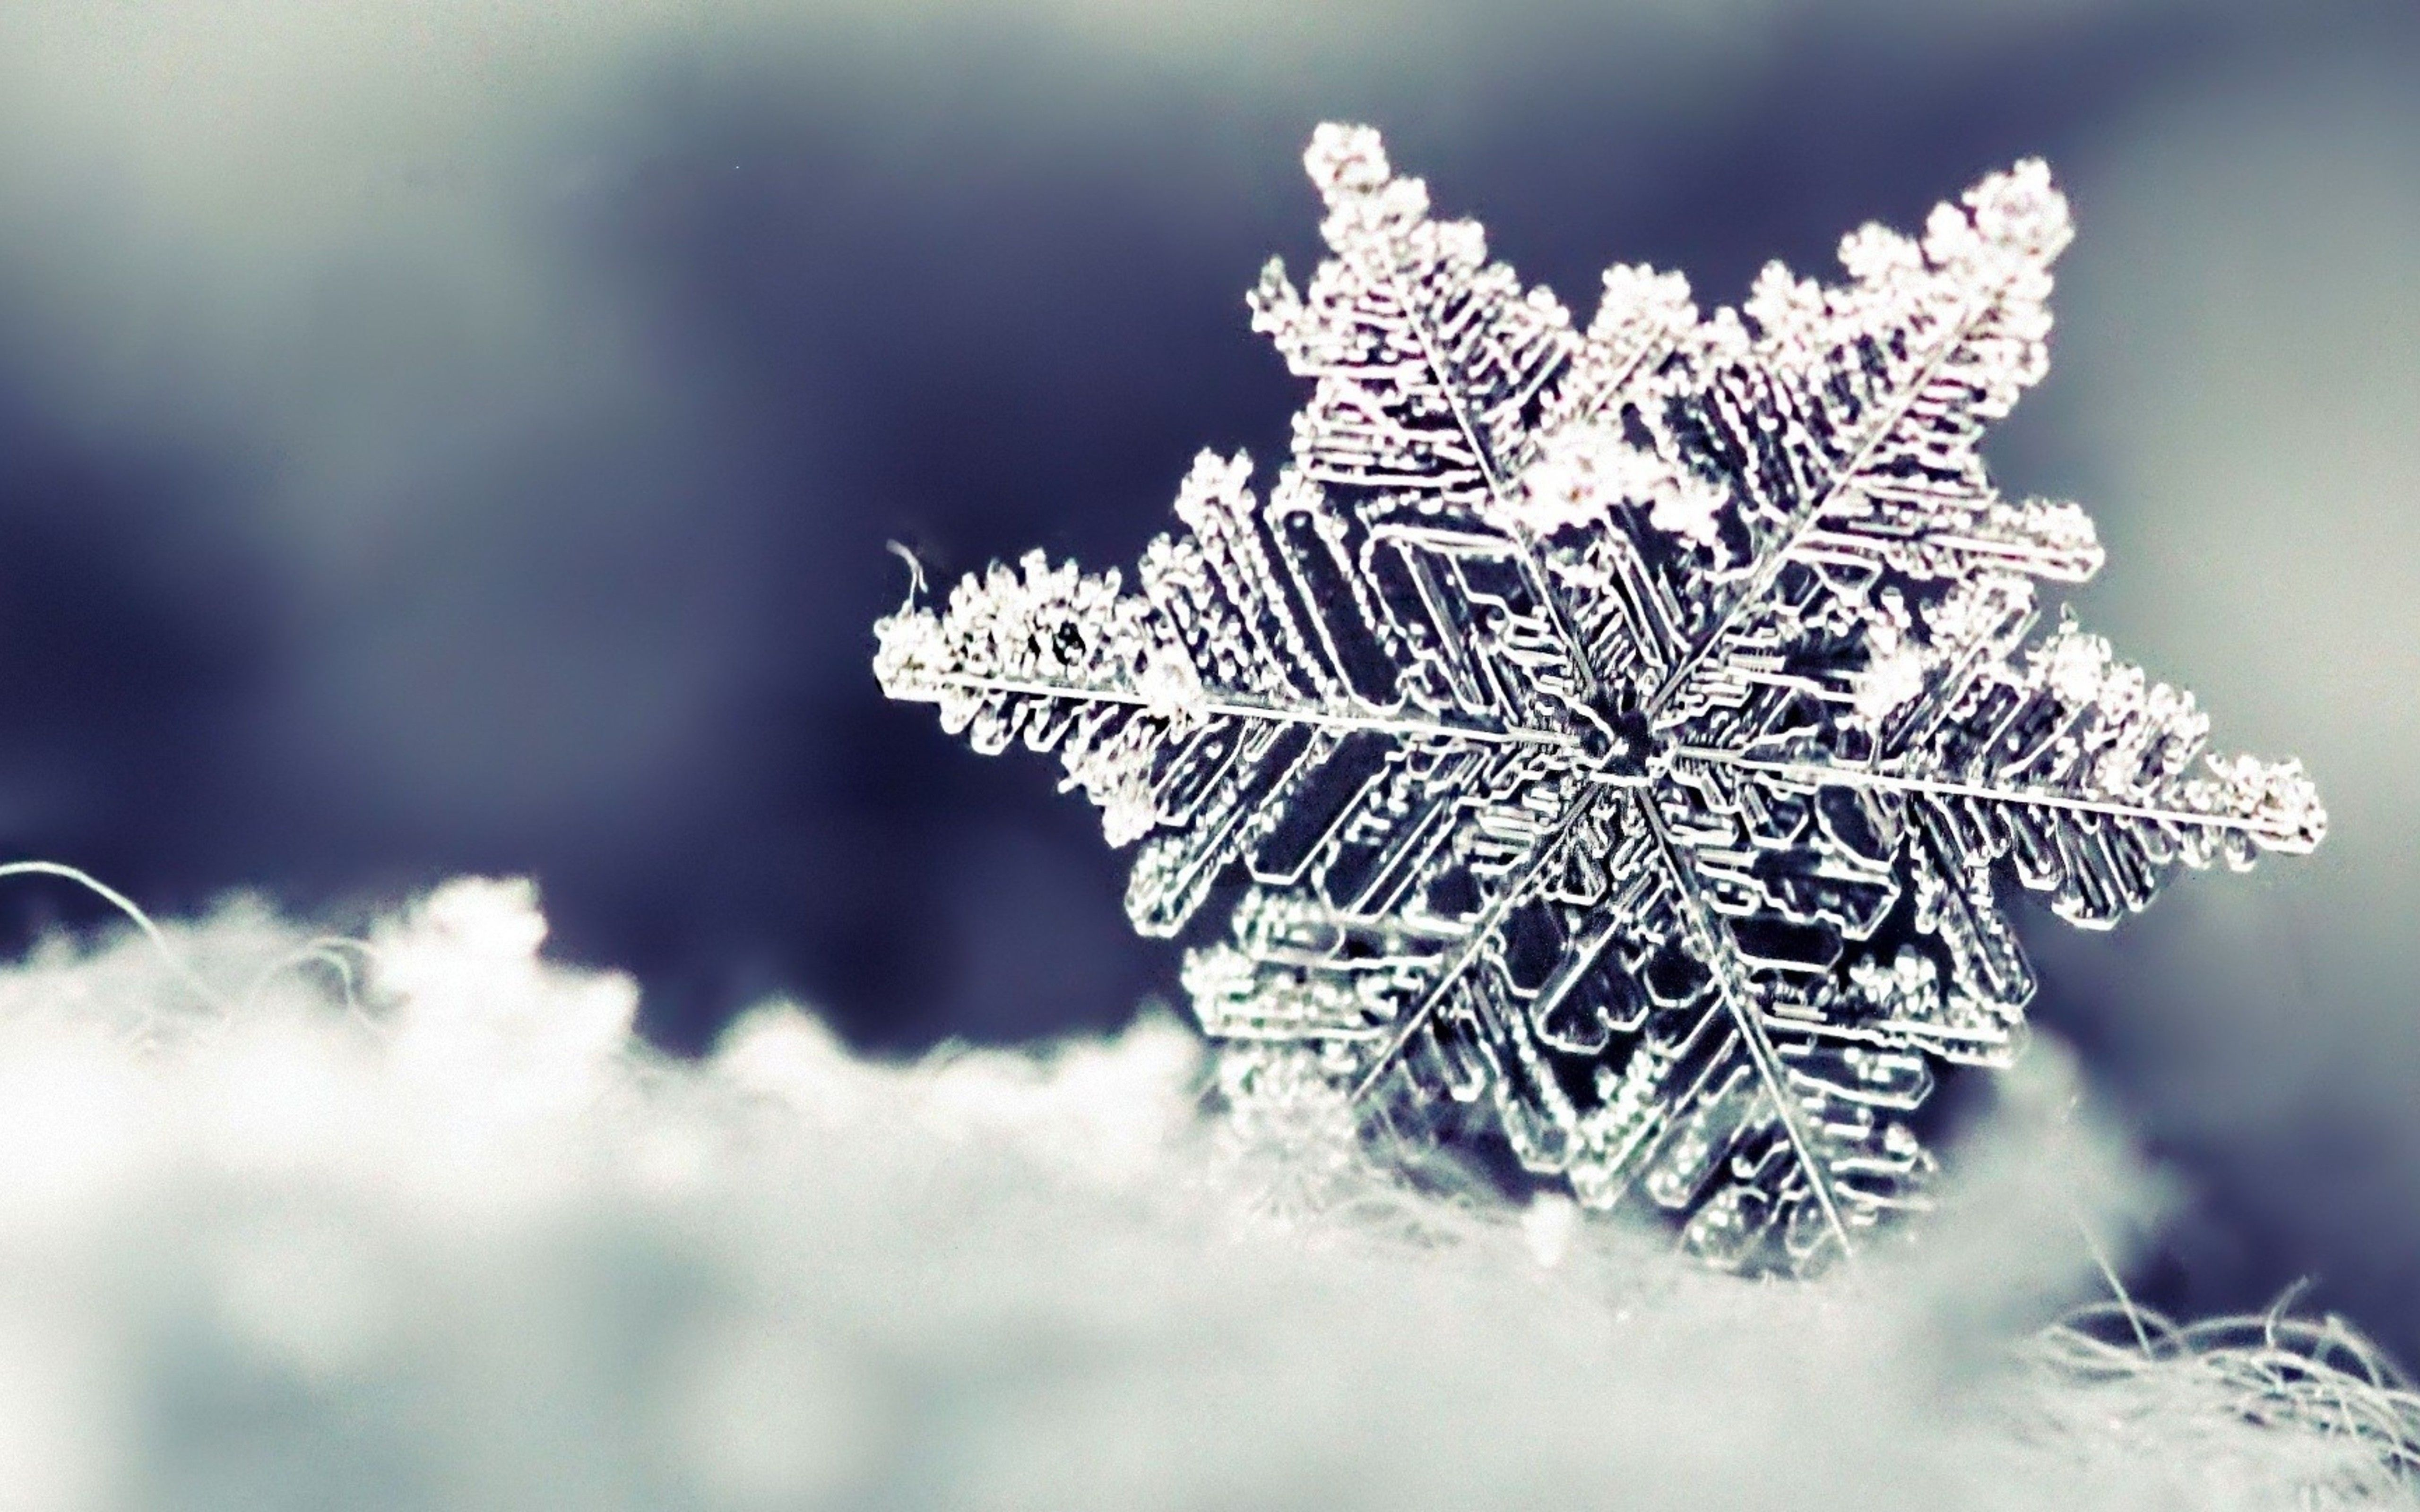 Wallpapers Download 5120x3200 Frozen snowflake